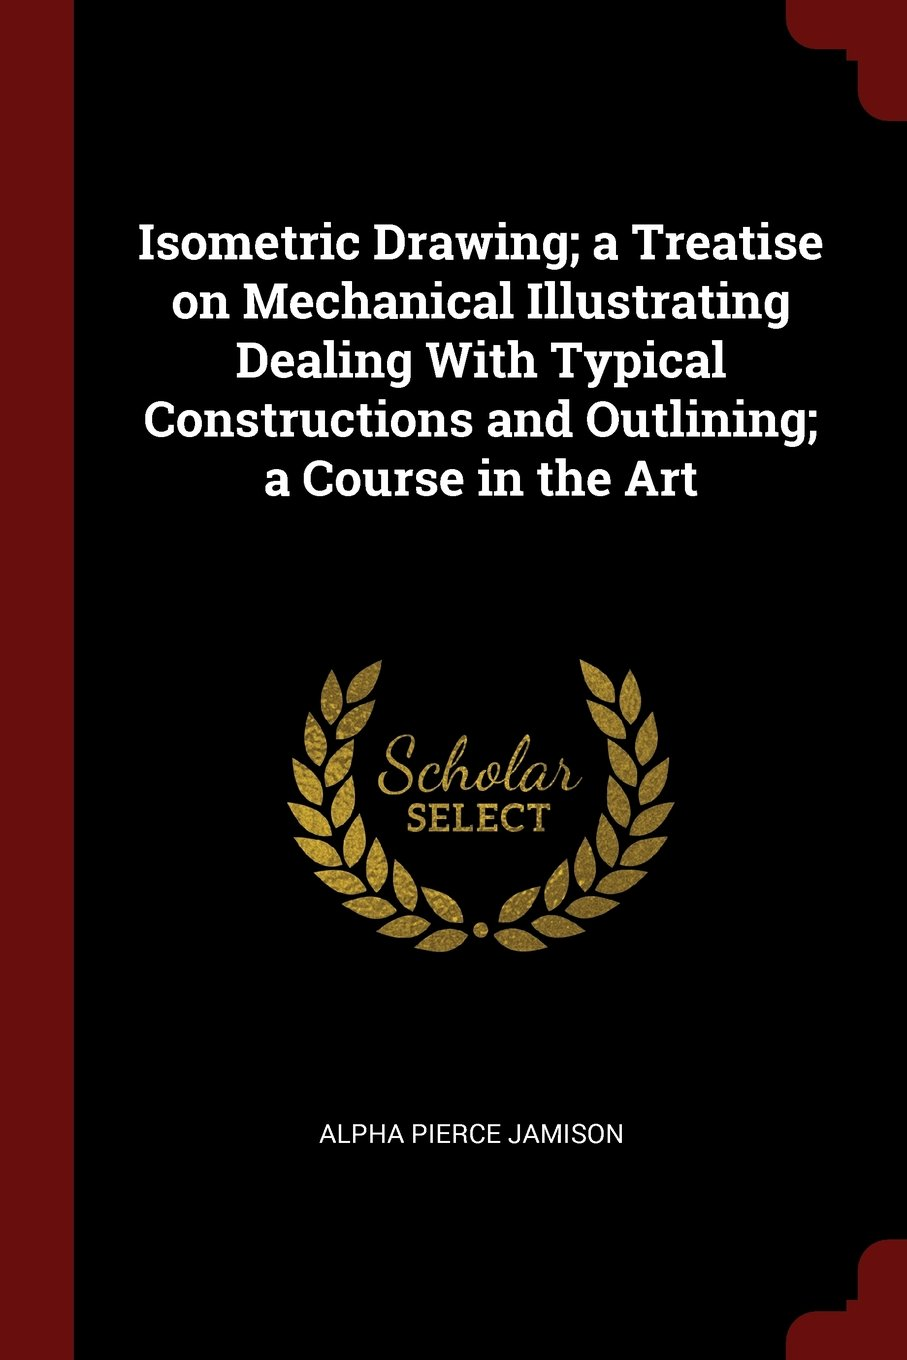 Isometric Drawing; a Treatise on Mechanical Illustrating Dealing With Typical Constructions and Outlining; a Course in the Art ebook